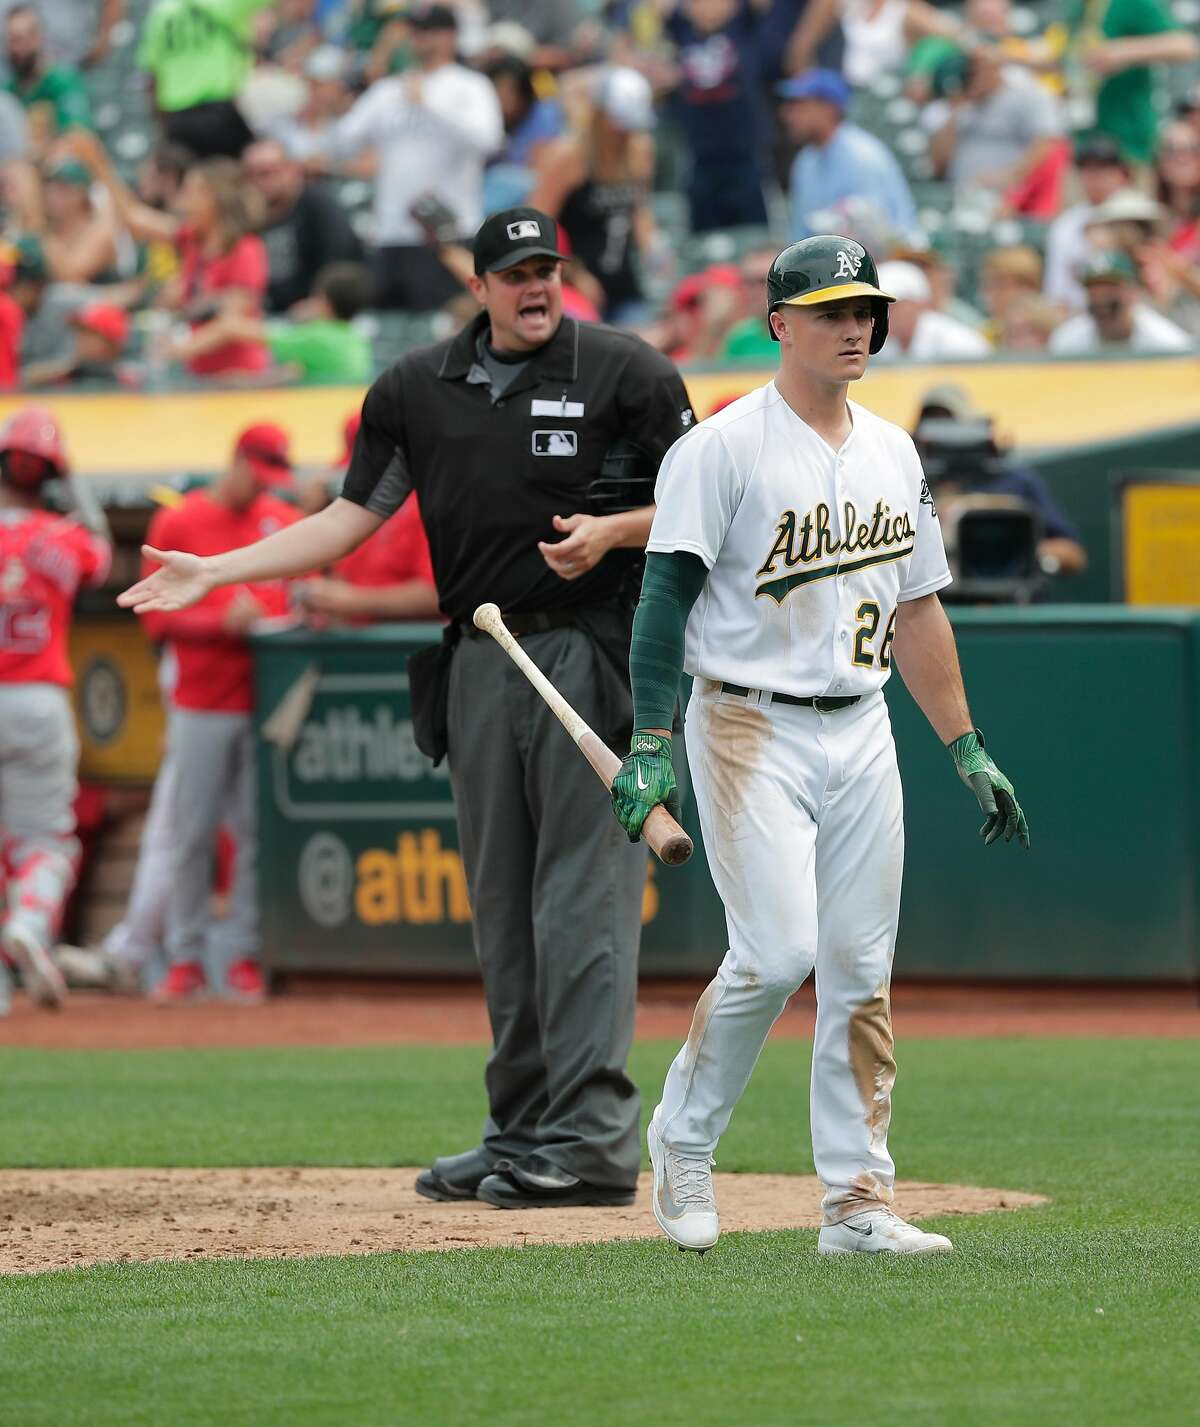 A's Matt Chapman, 26 walks back to the dugout after being called out looking to end the sixth inning as home plate umpire Jordan Baker barks back at Chapman, as the Oakland Athletics take on the Los Angeles Angels at the Oakland Coliseum in Oakland, Ca. on Mon. September 4, 2017.